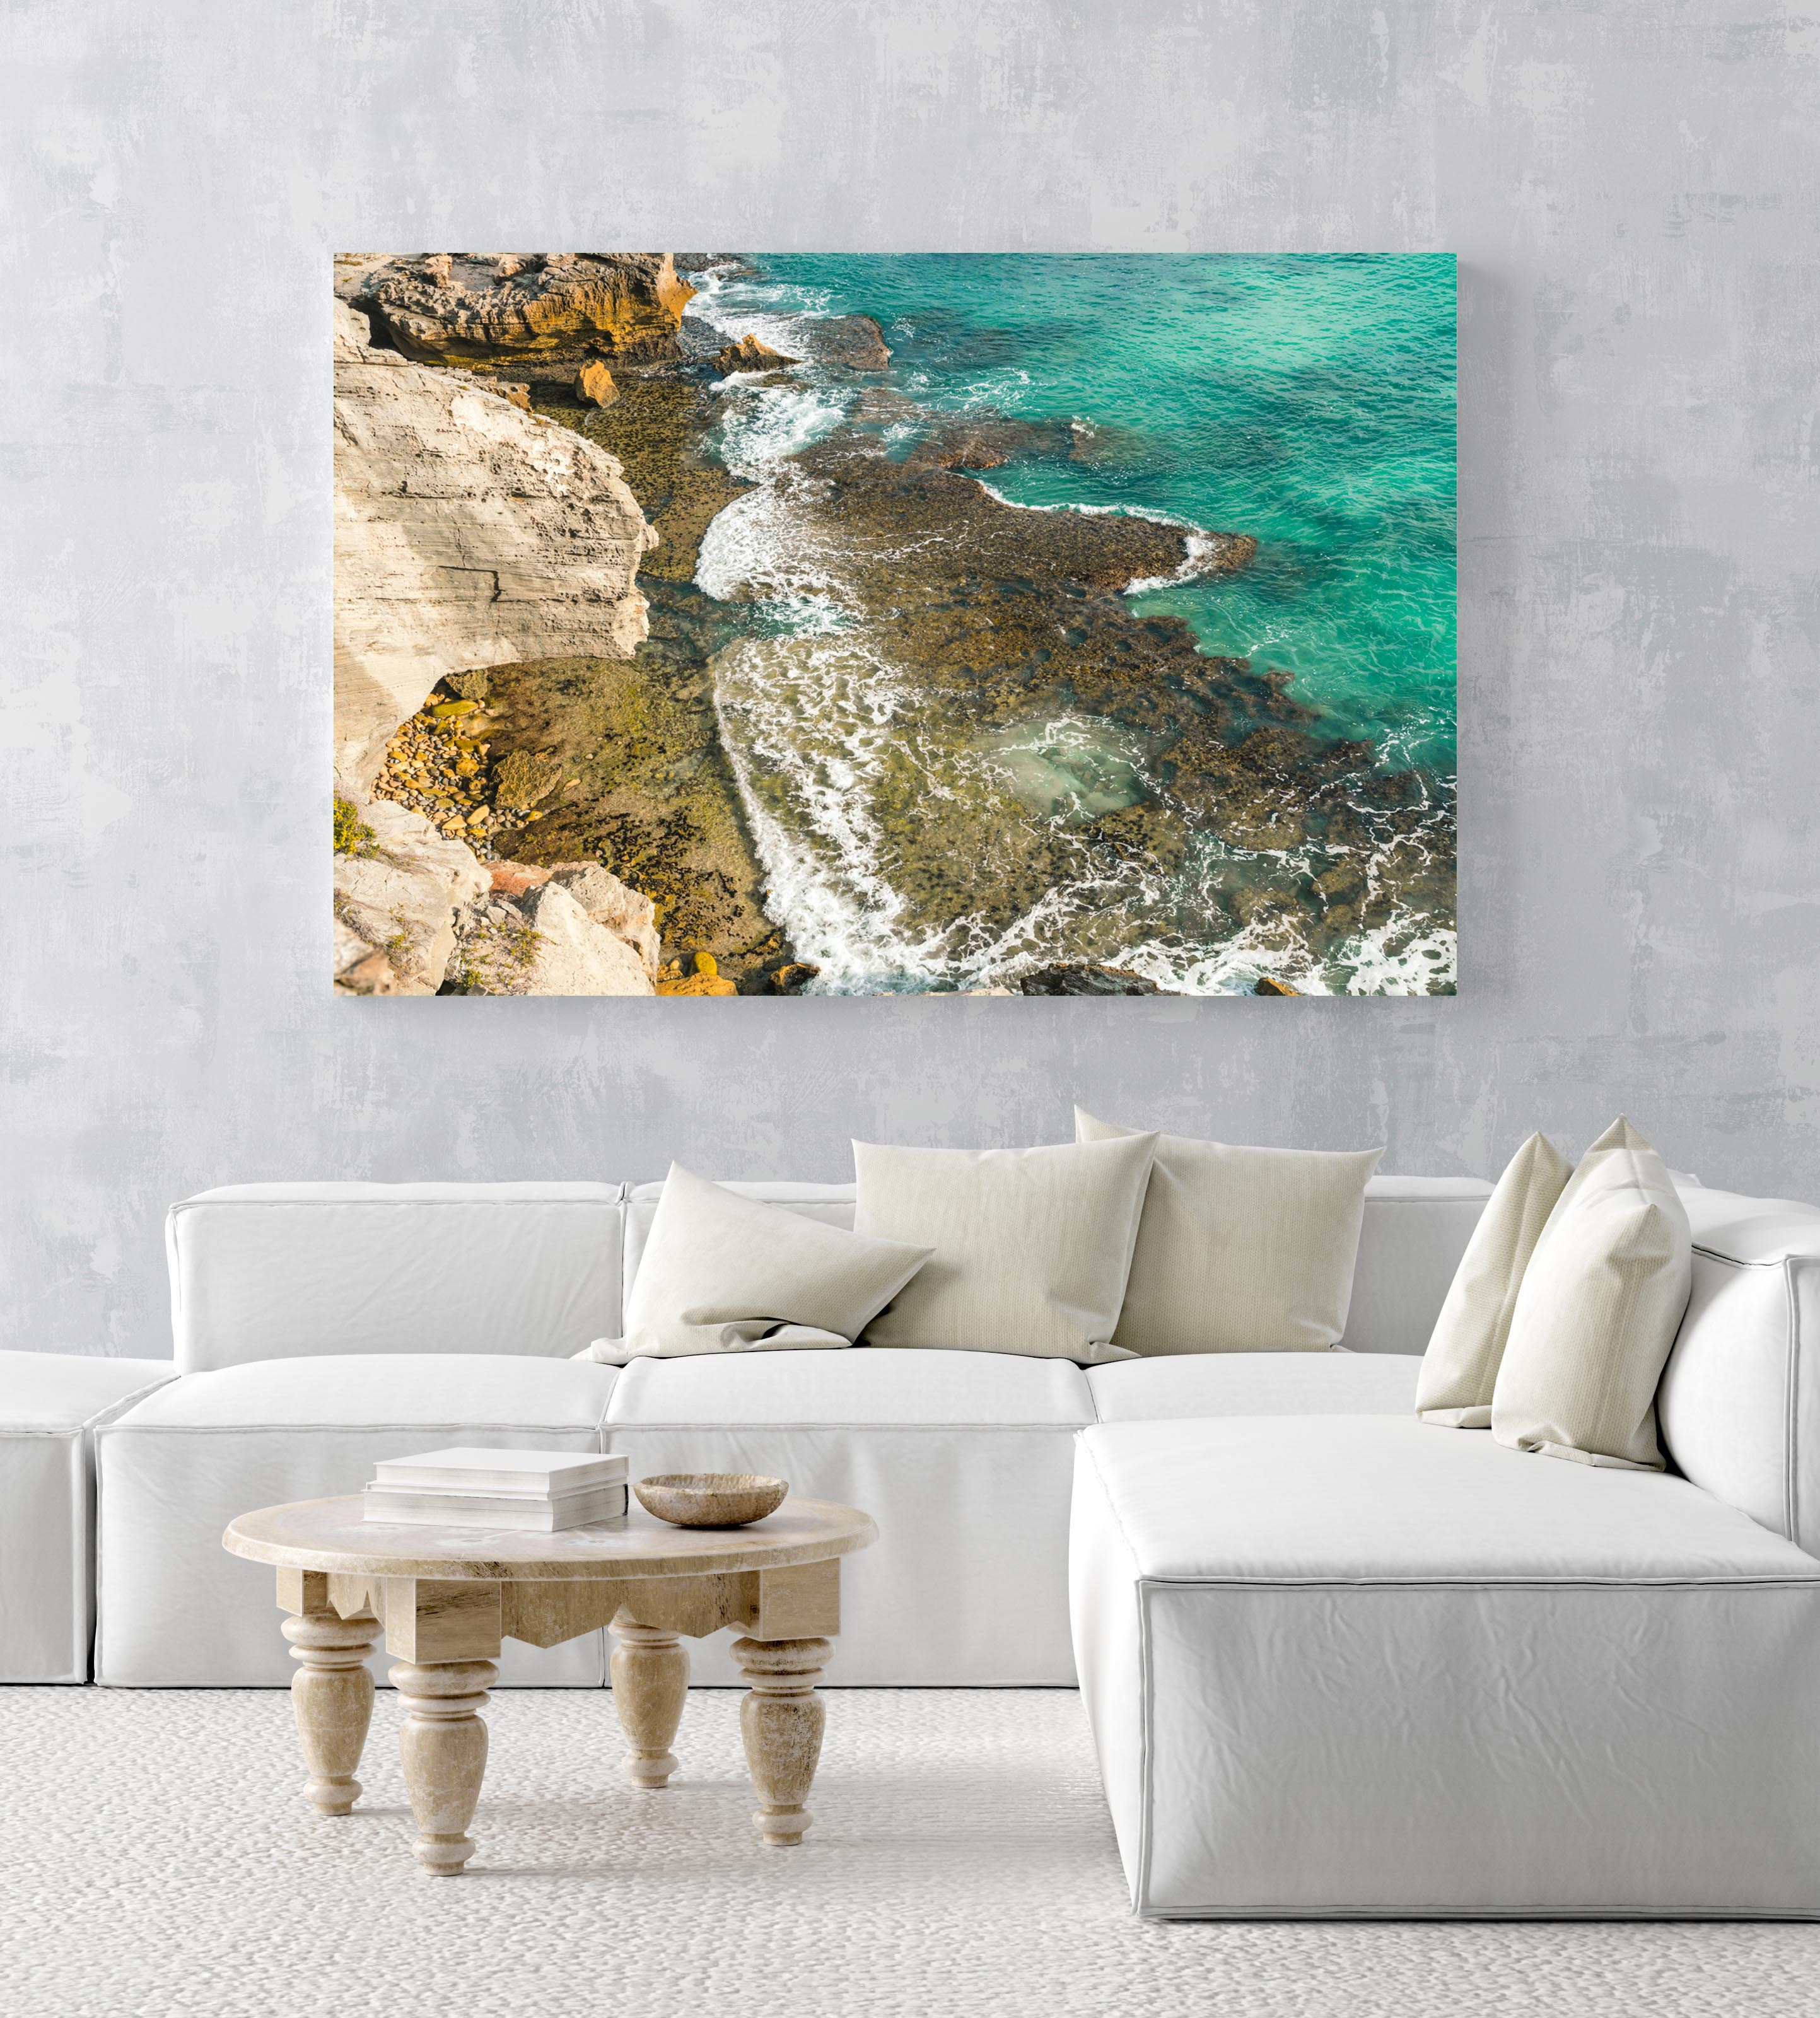 Turquoise water crashing on rocks in arniston south africa in an acrylic/perspex frame